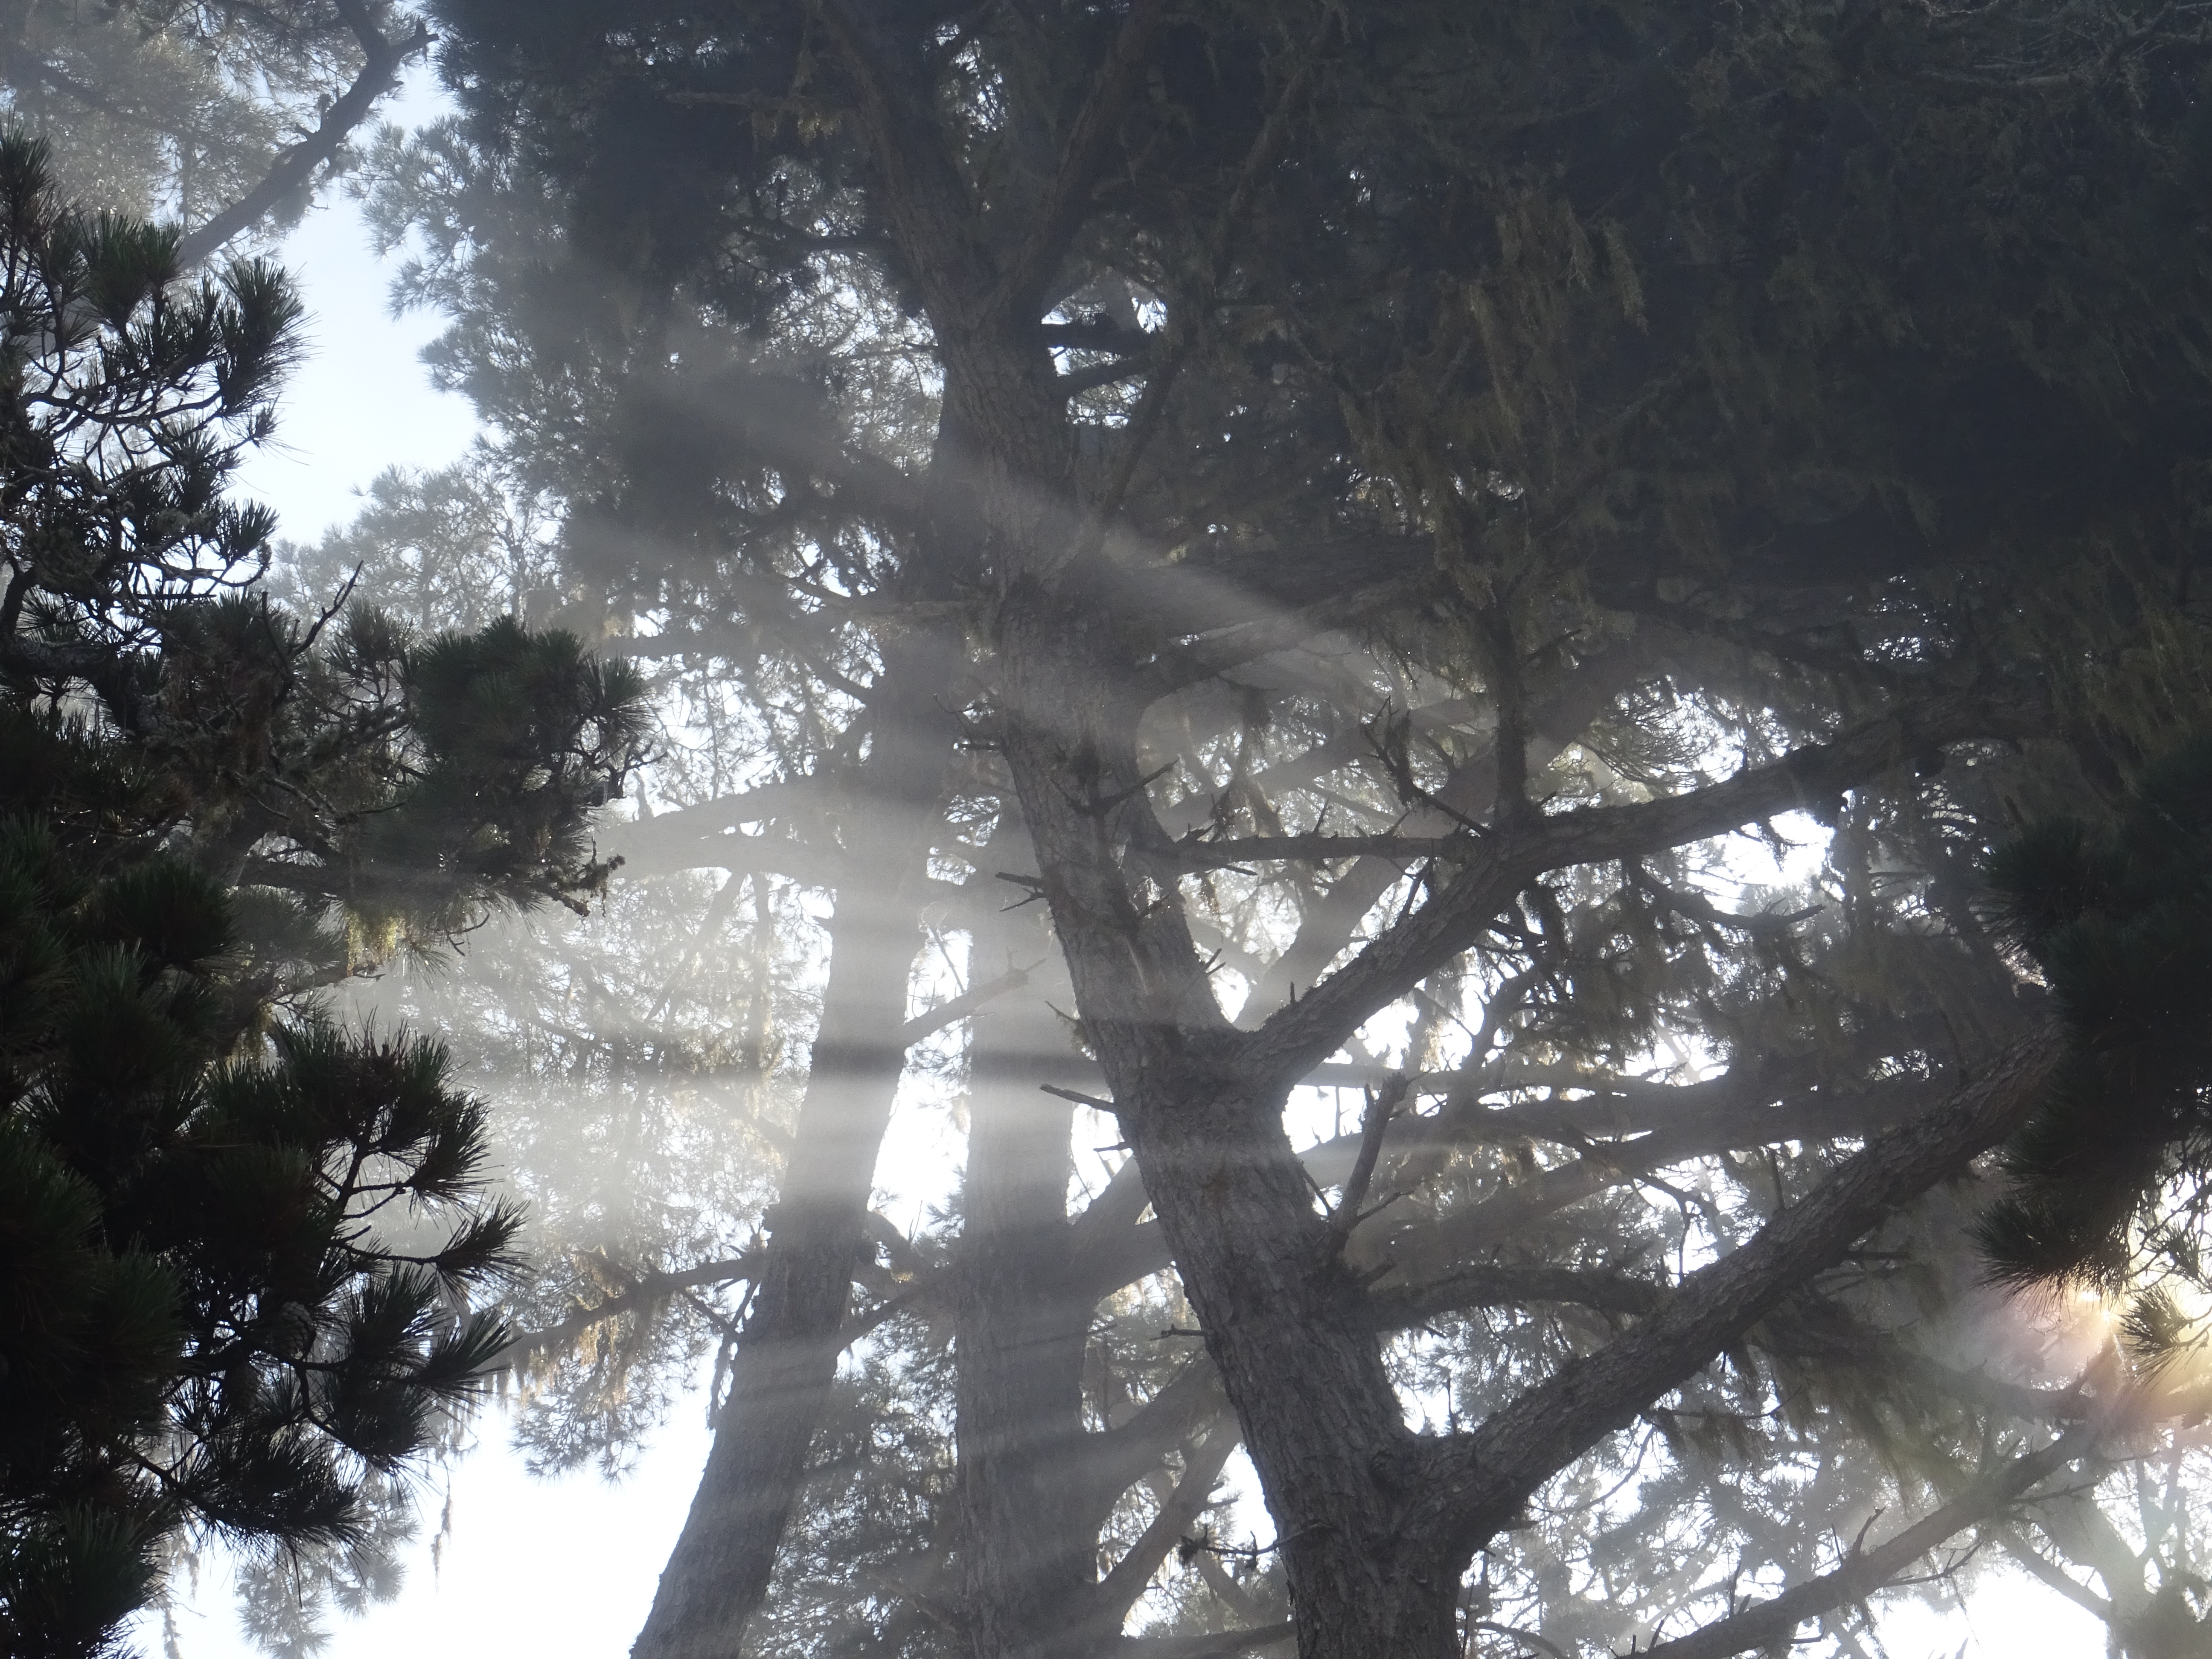 Streaks of sunlight through the fog and tree